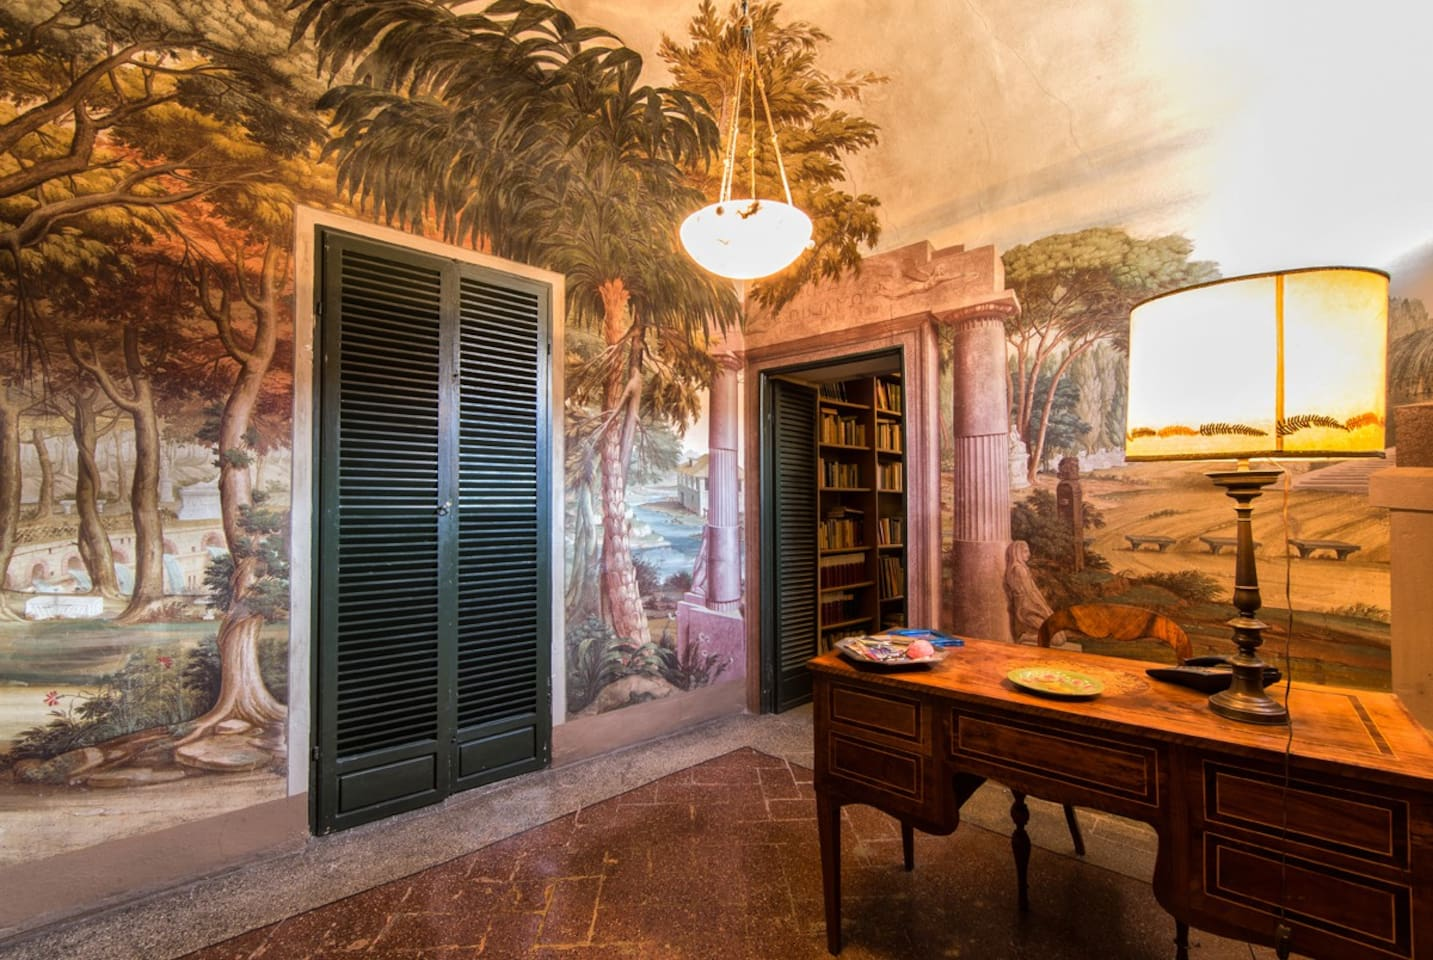 Apartment with stunning Frescoes